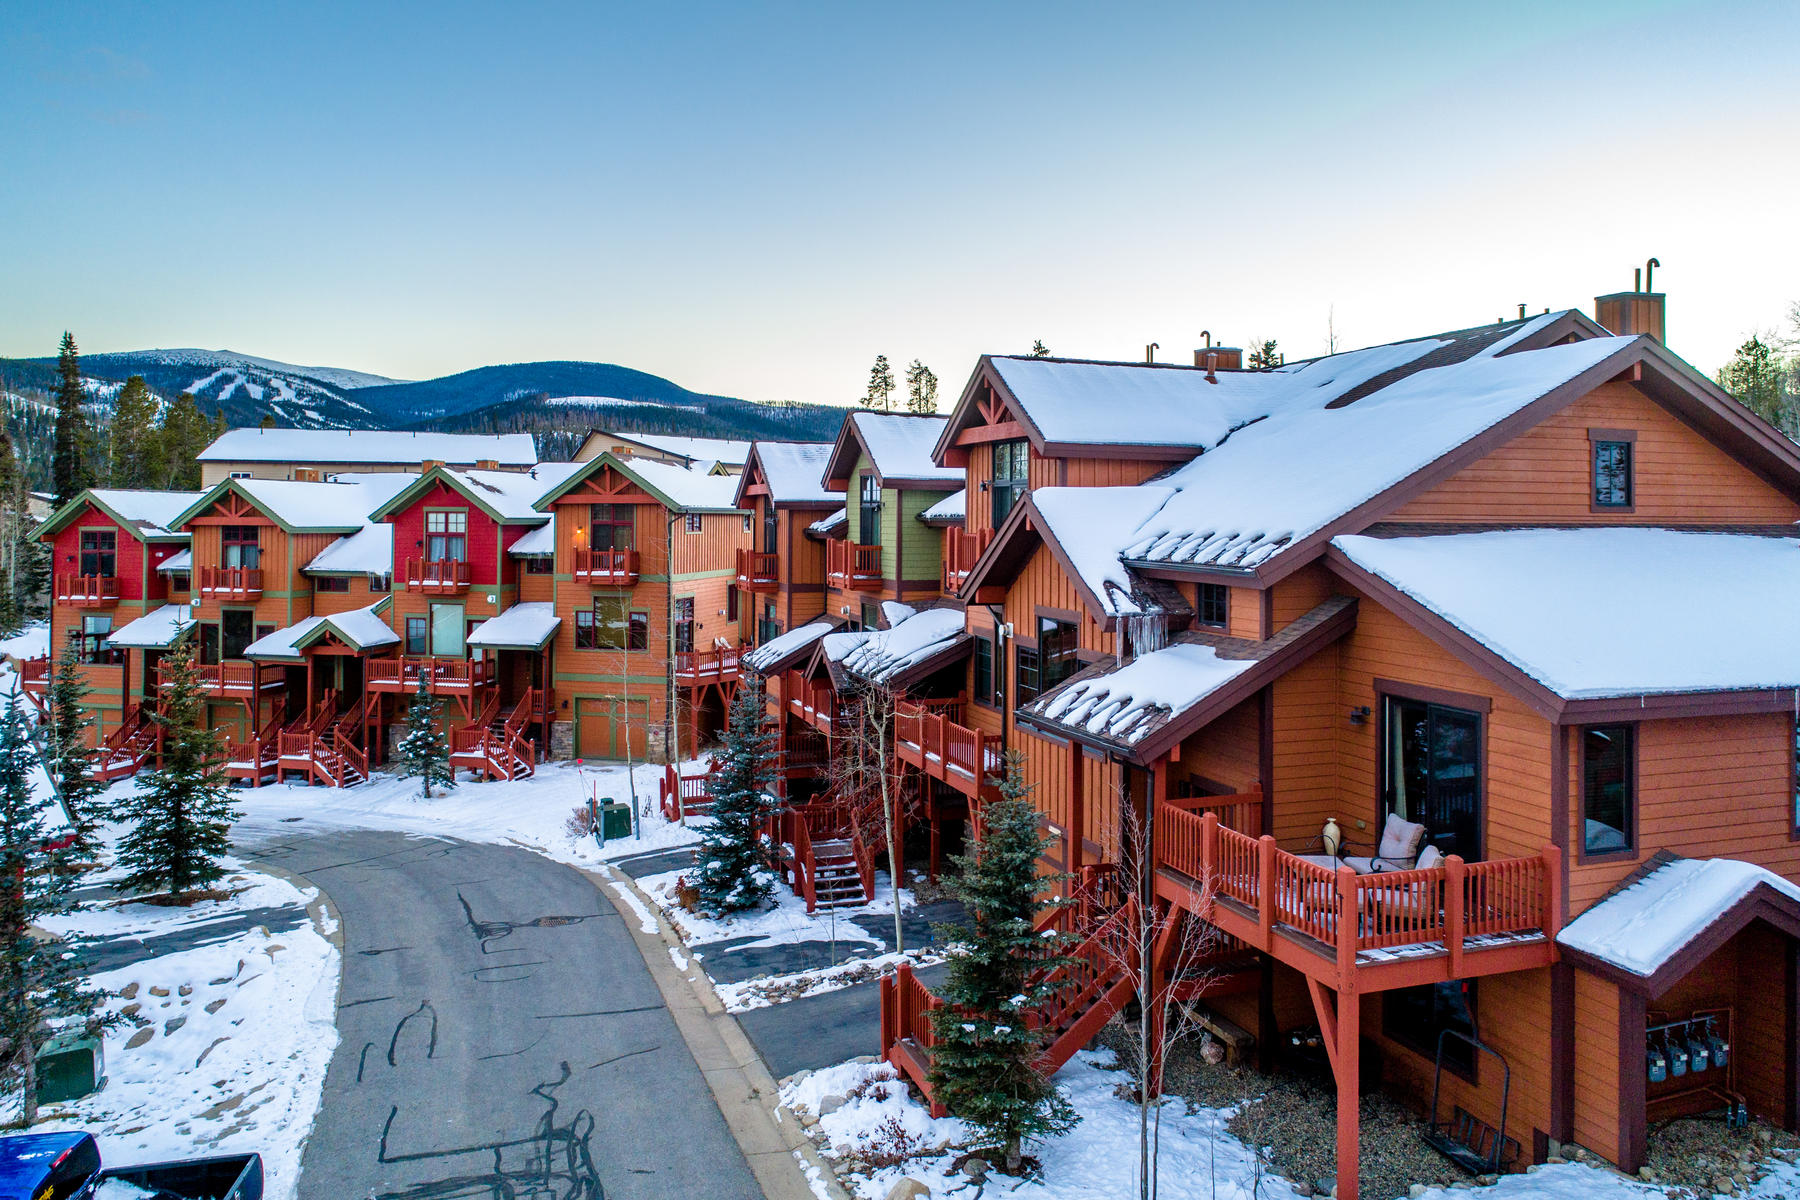 Single Family Home for Active at Beautifully furnished end unit in the heart of Winter Park 1040 Bear Trl Winter Park, Colorado 80482 United States